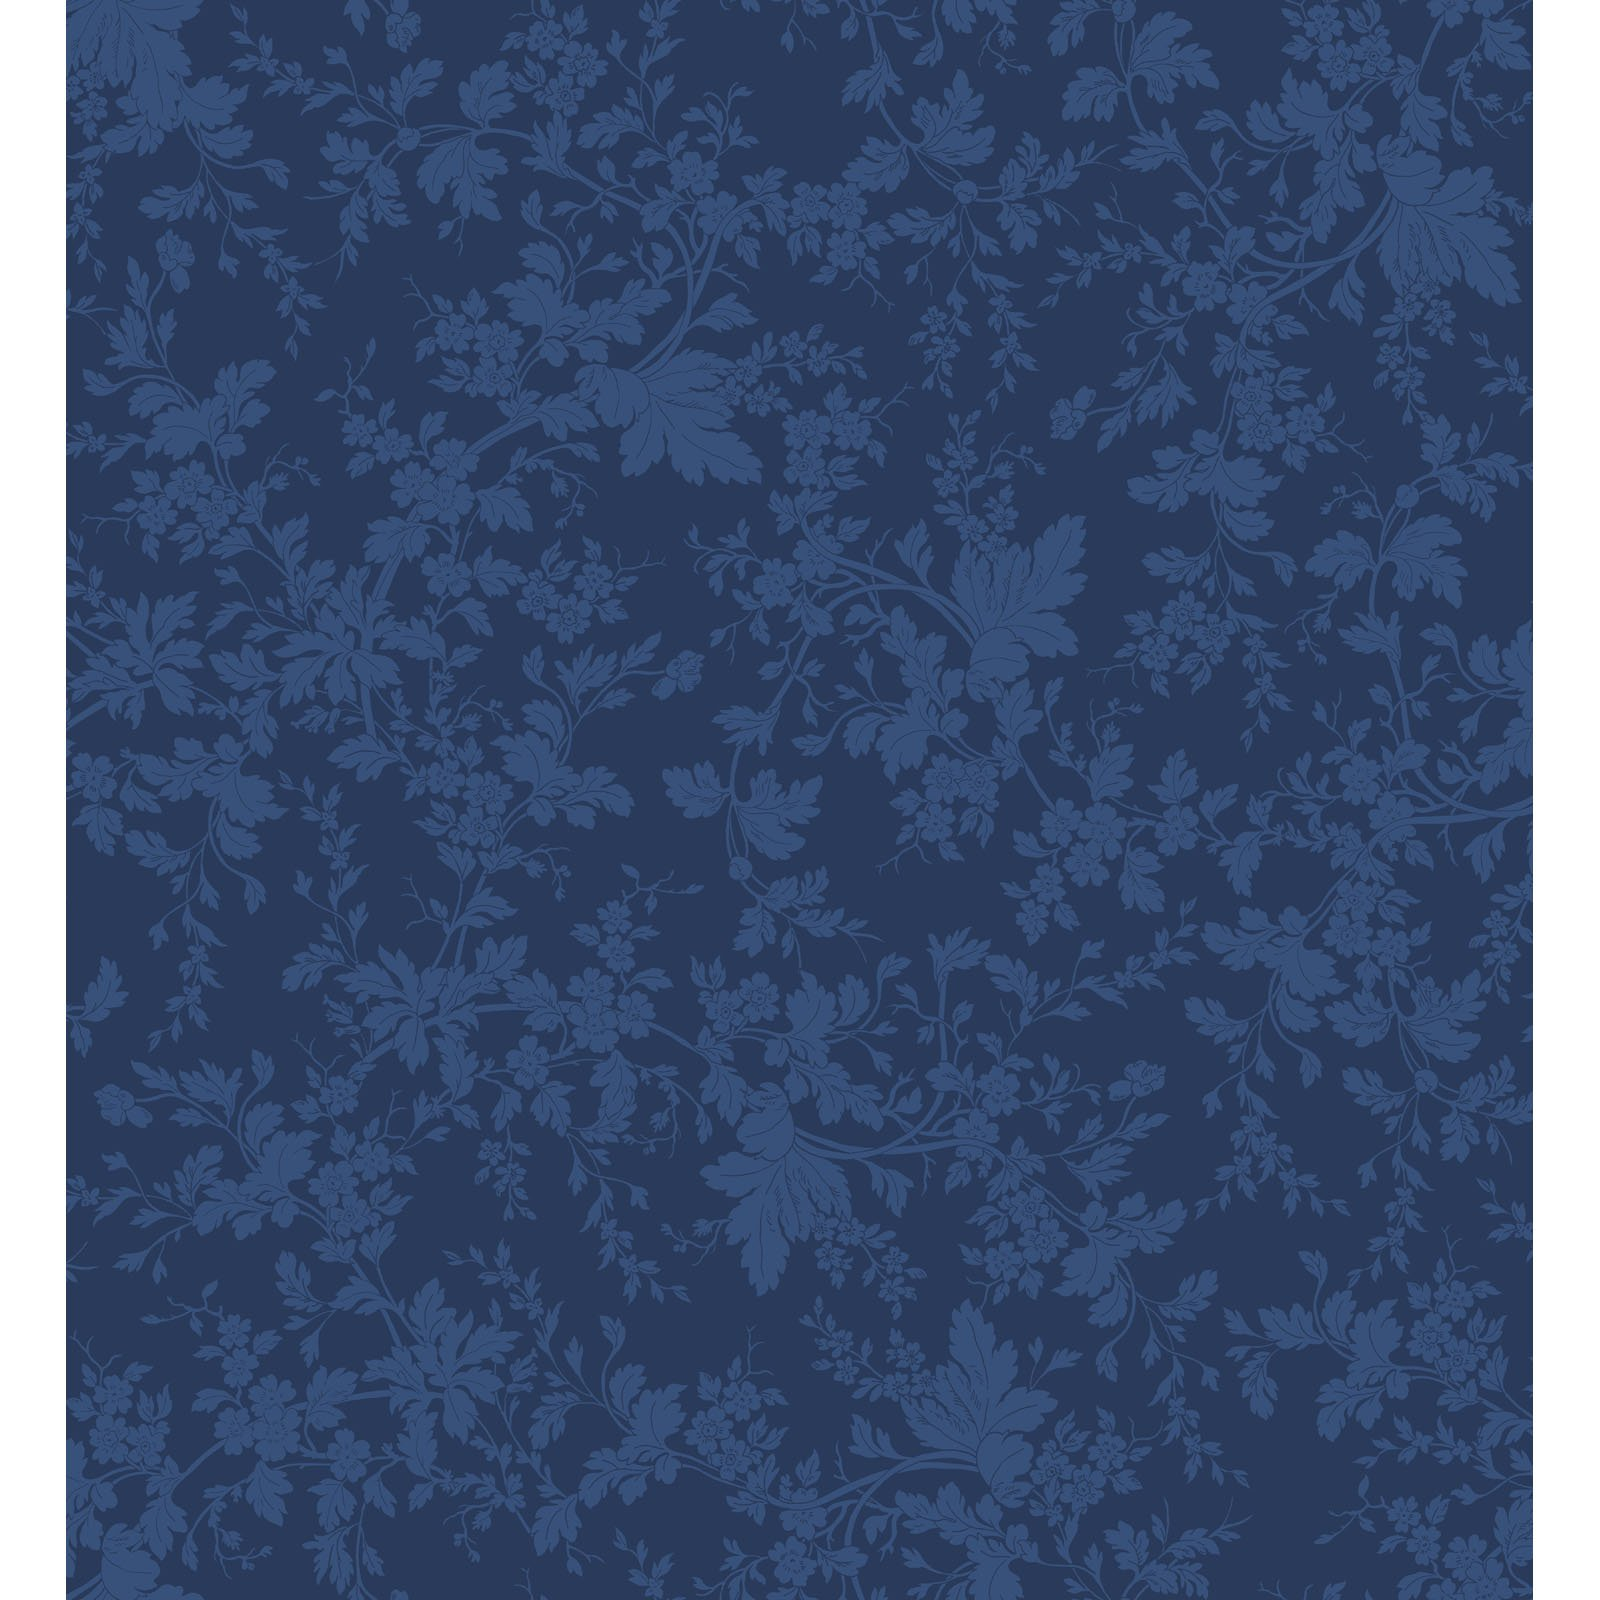 EESC-9875 N - BELLE EPOQUE BY MAYWOOD STUDIO FLORAL DAMASK NAVY - ARRIVING JANUARY 2021